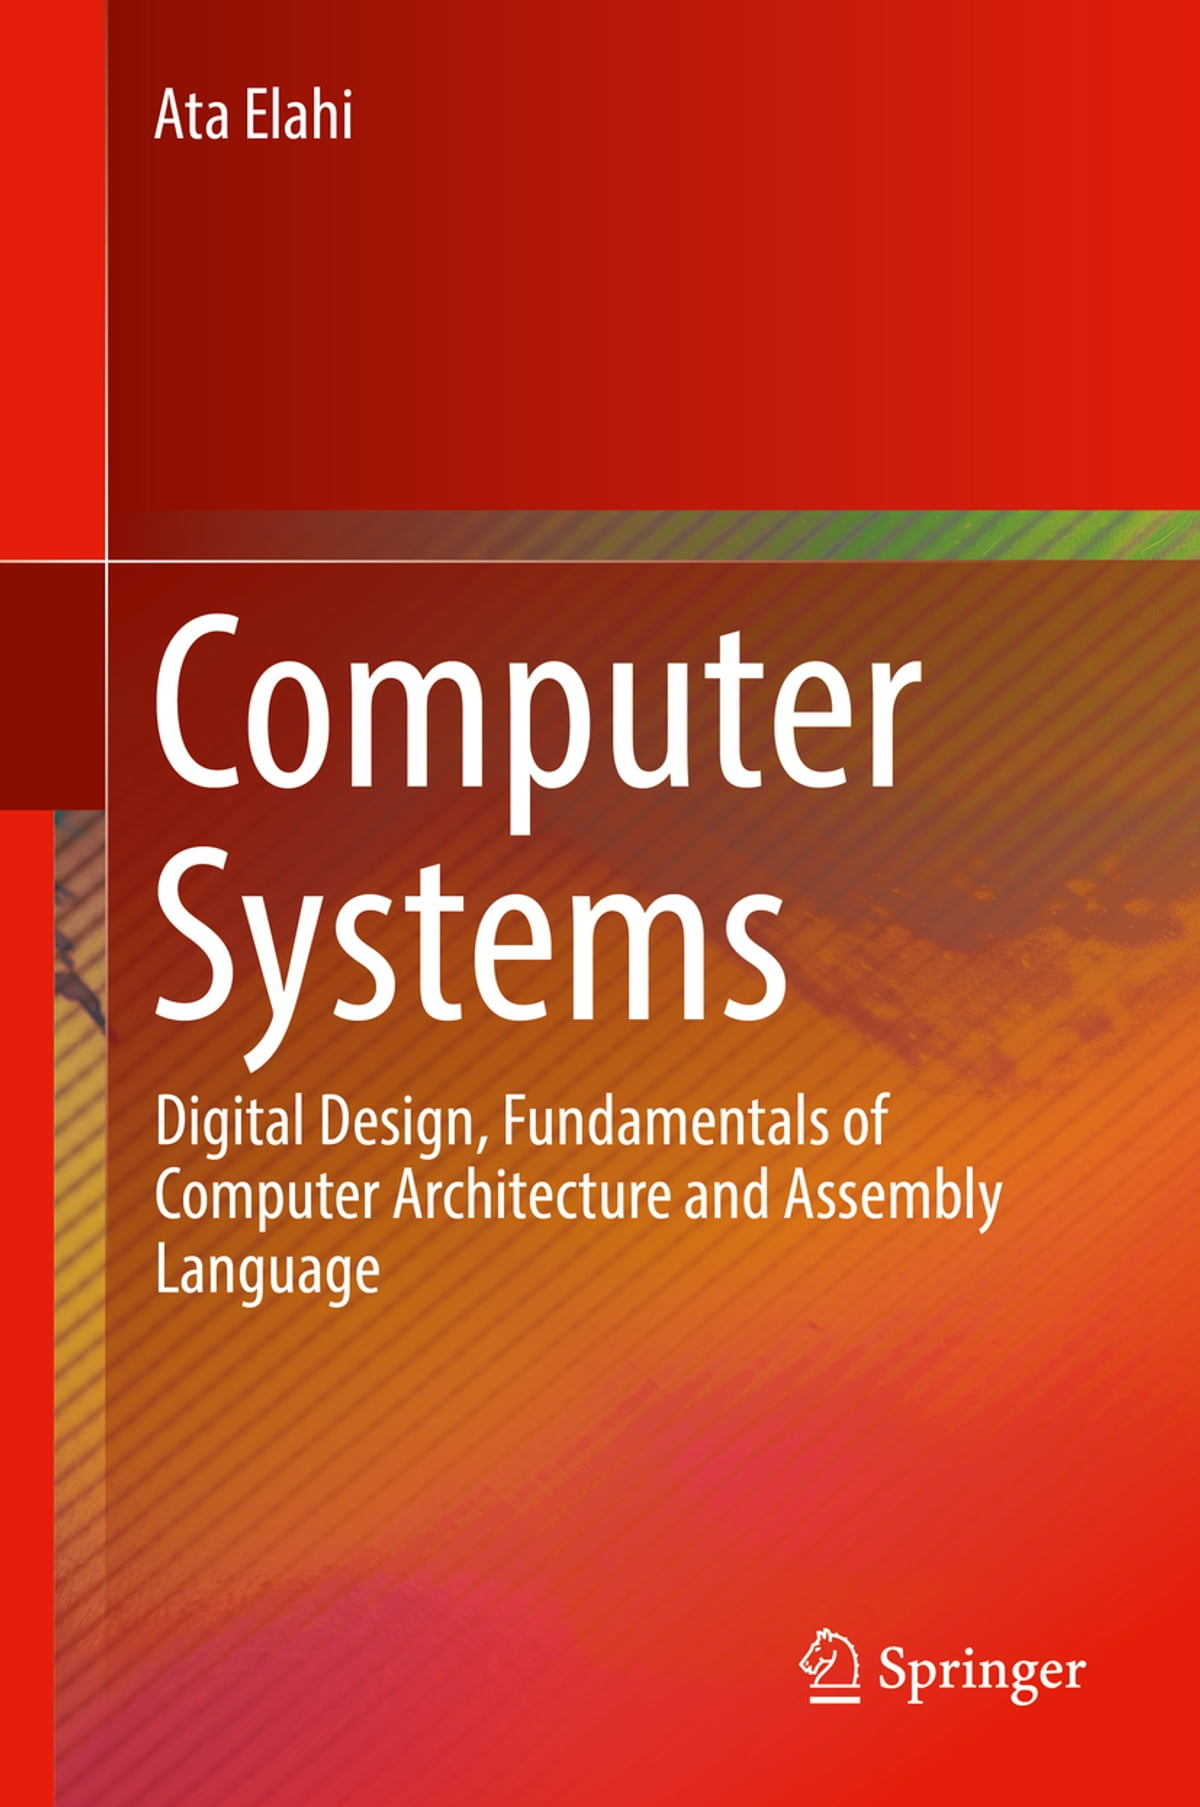 standard book ok computer architecture Summary: there are 3 main time limits (which are determined by human perceptual abilities) to keep in mind when optimizing web and application performance normally, response times should be as fast as possible, but it is also possible for the computer to react so fast that the user cannot keep up.